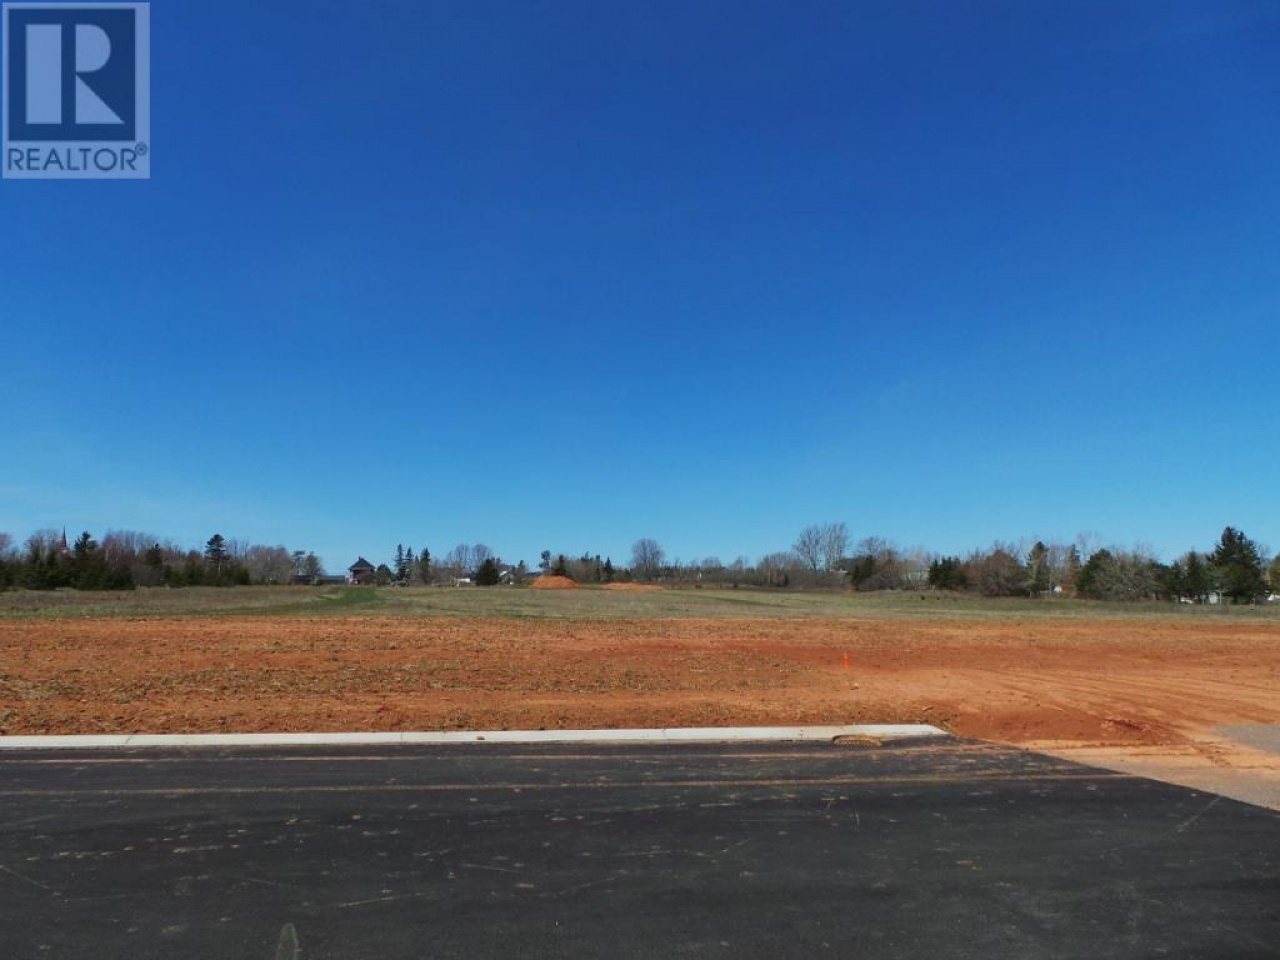 Lot 20-1 Waterview HeightsLot 20-1 Waterview Heights, Summerside, Prince Edward Island C1N6H5, ,Vacant Land,For Sale,Lot 20-1 Waterview Heights,202111401